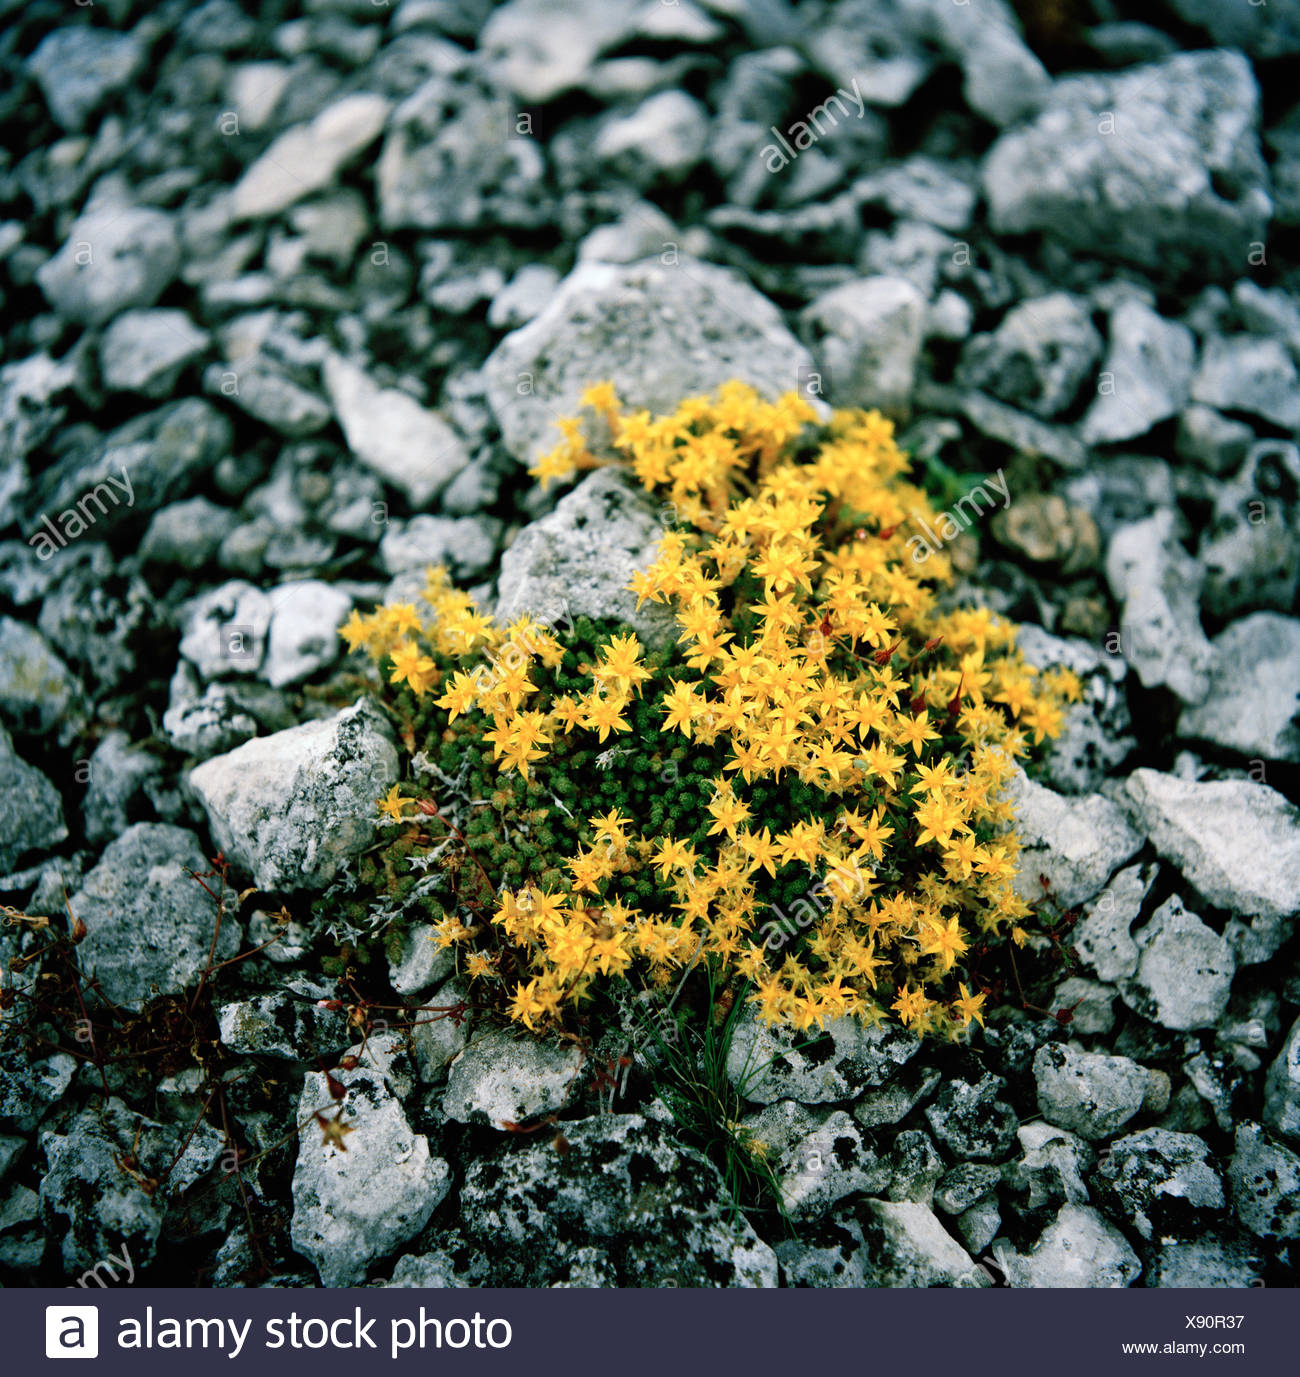 Yellow flowers among stones. - Stock Image